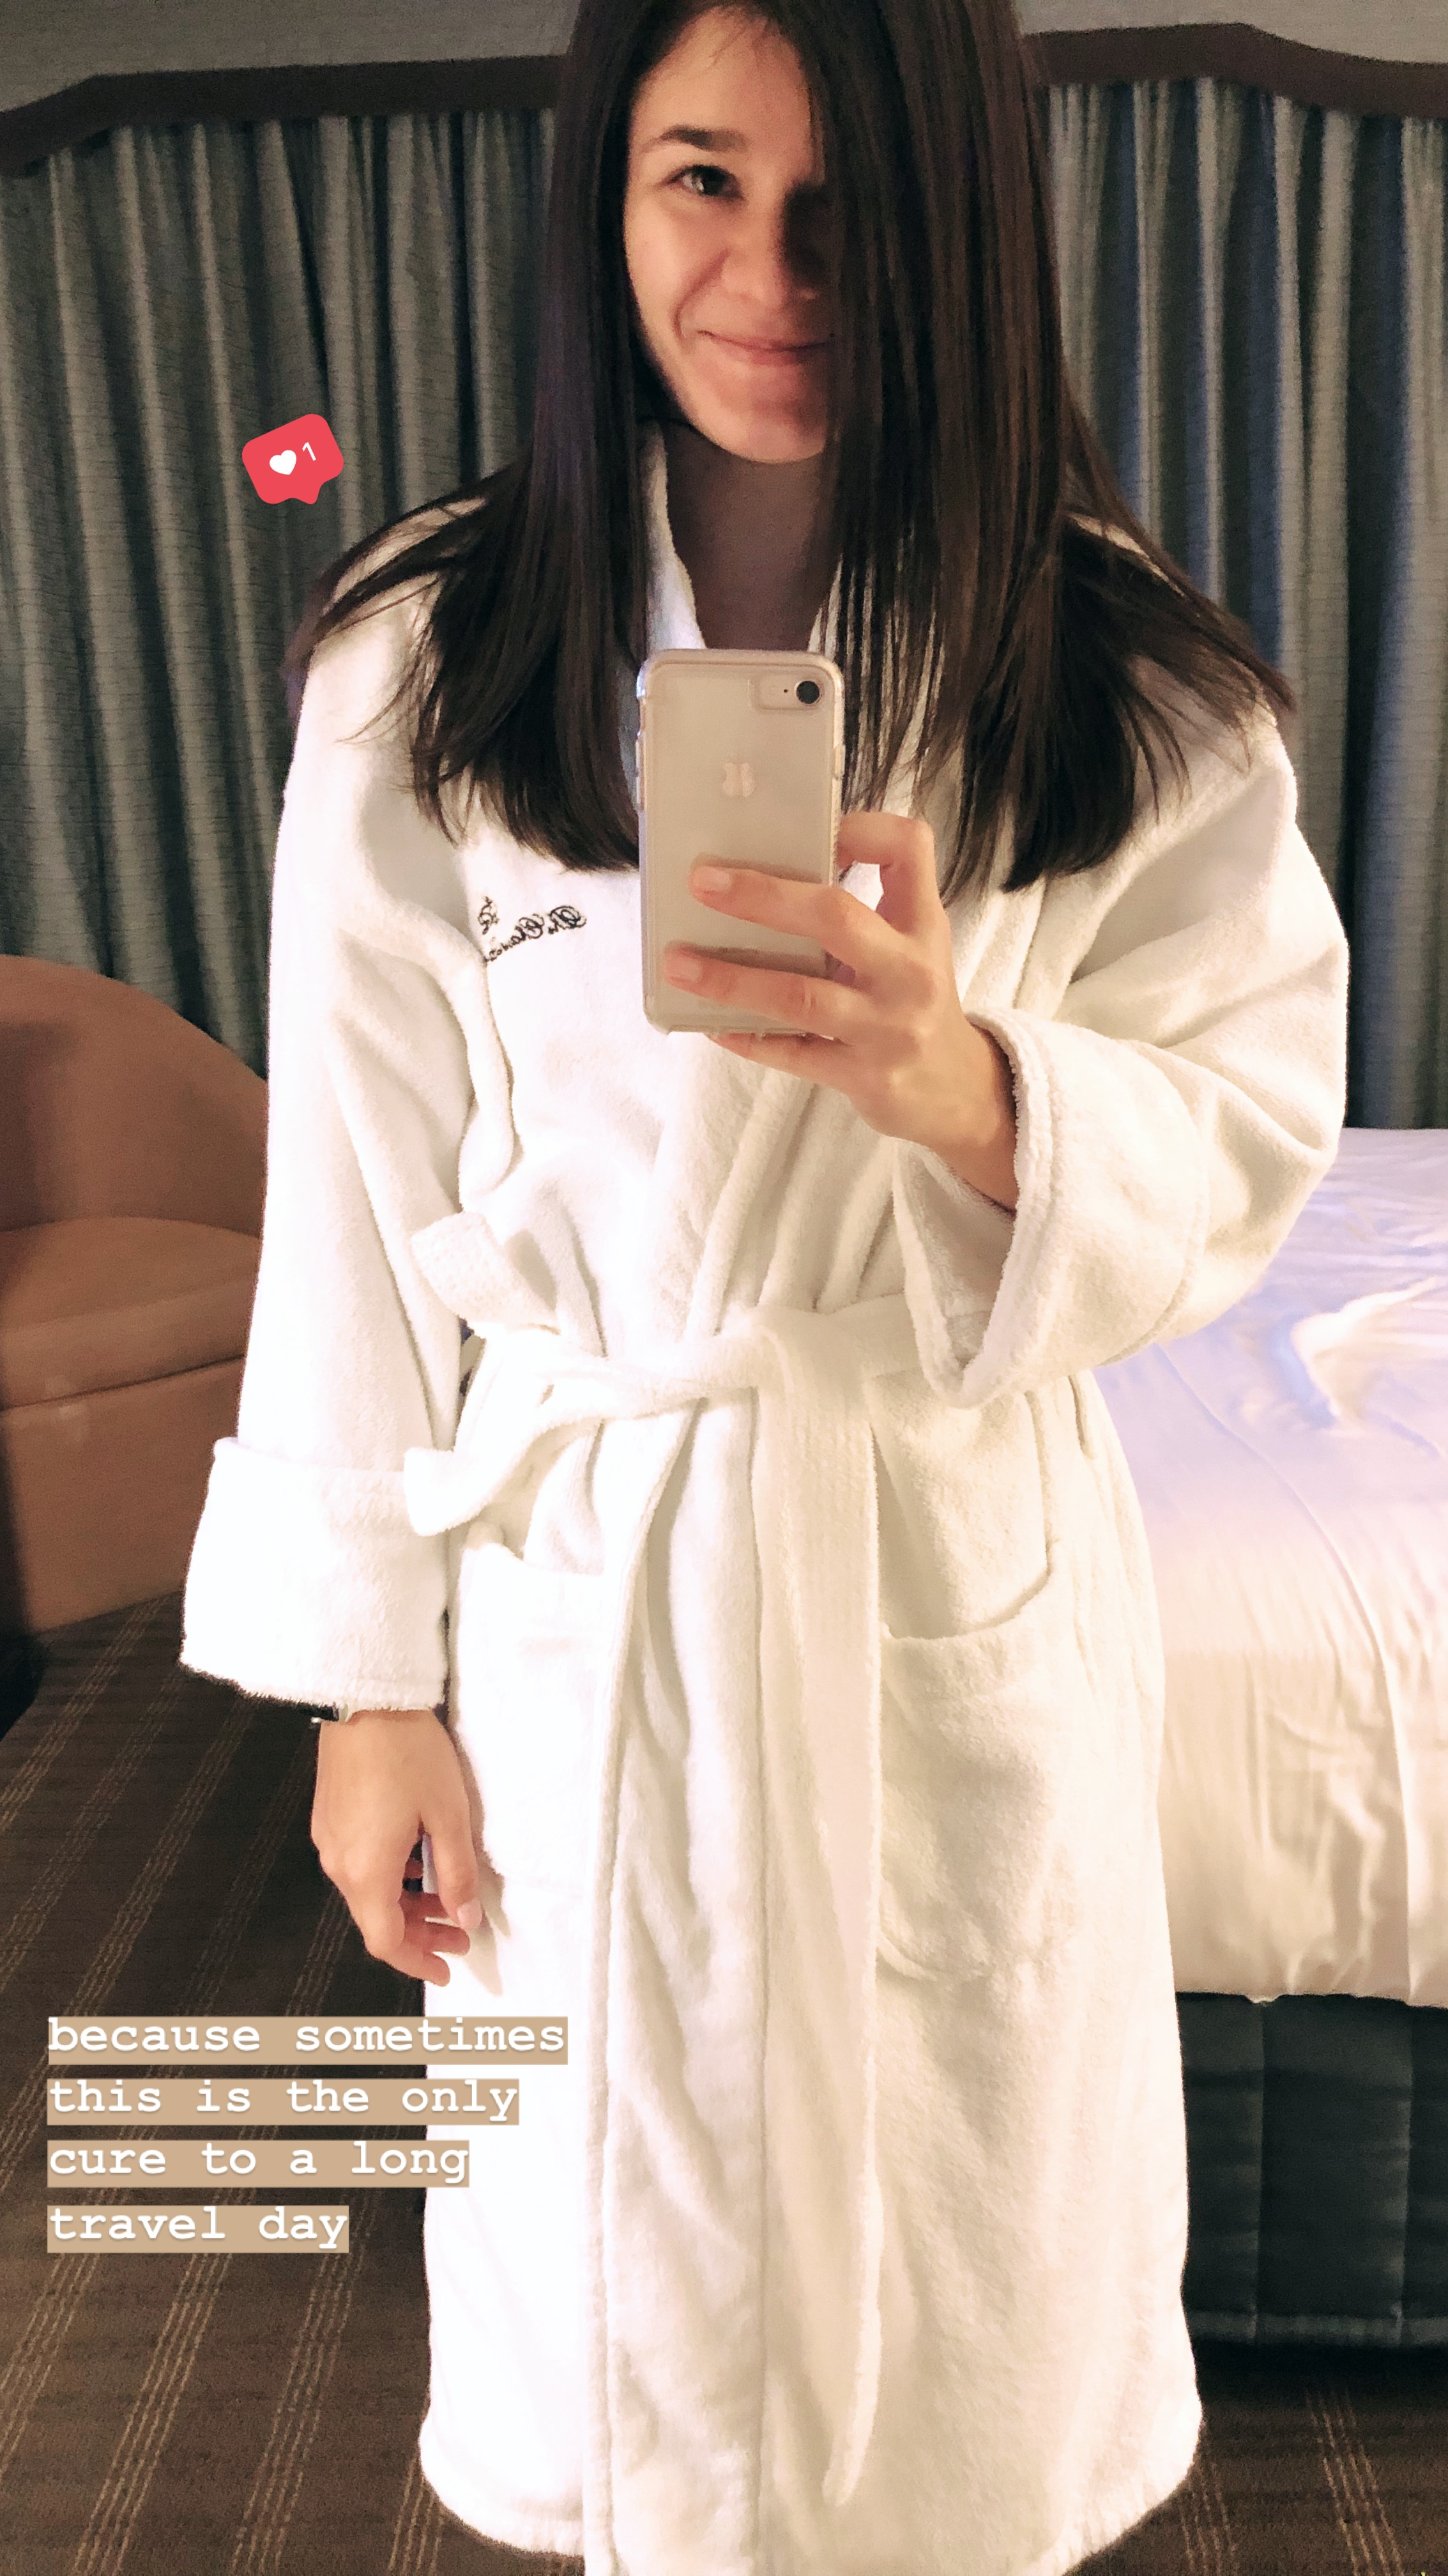 12 hour travel days call for hotel robes, DUH